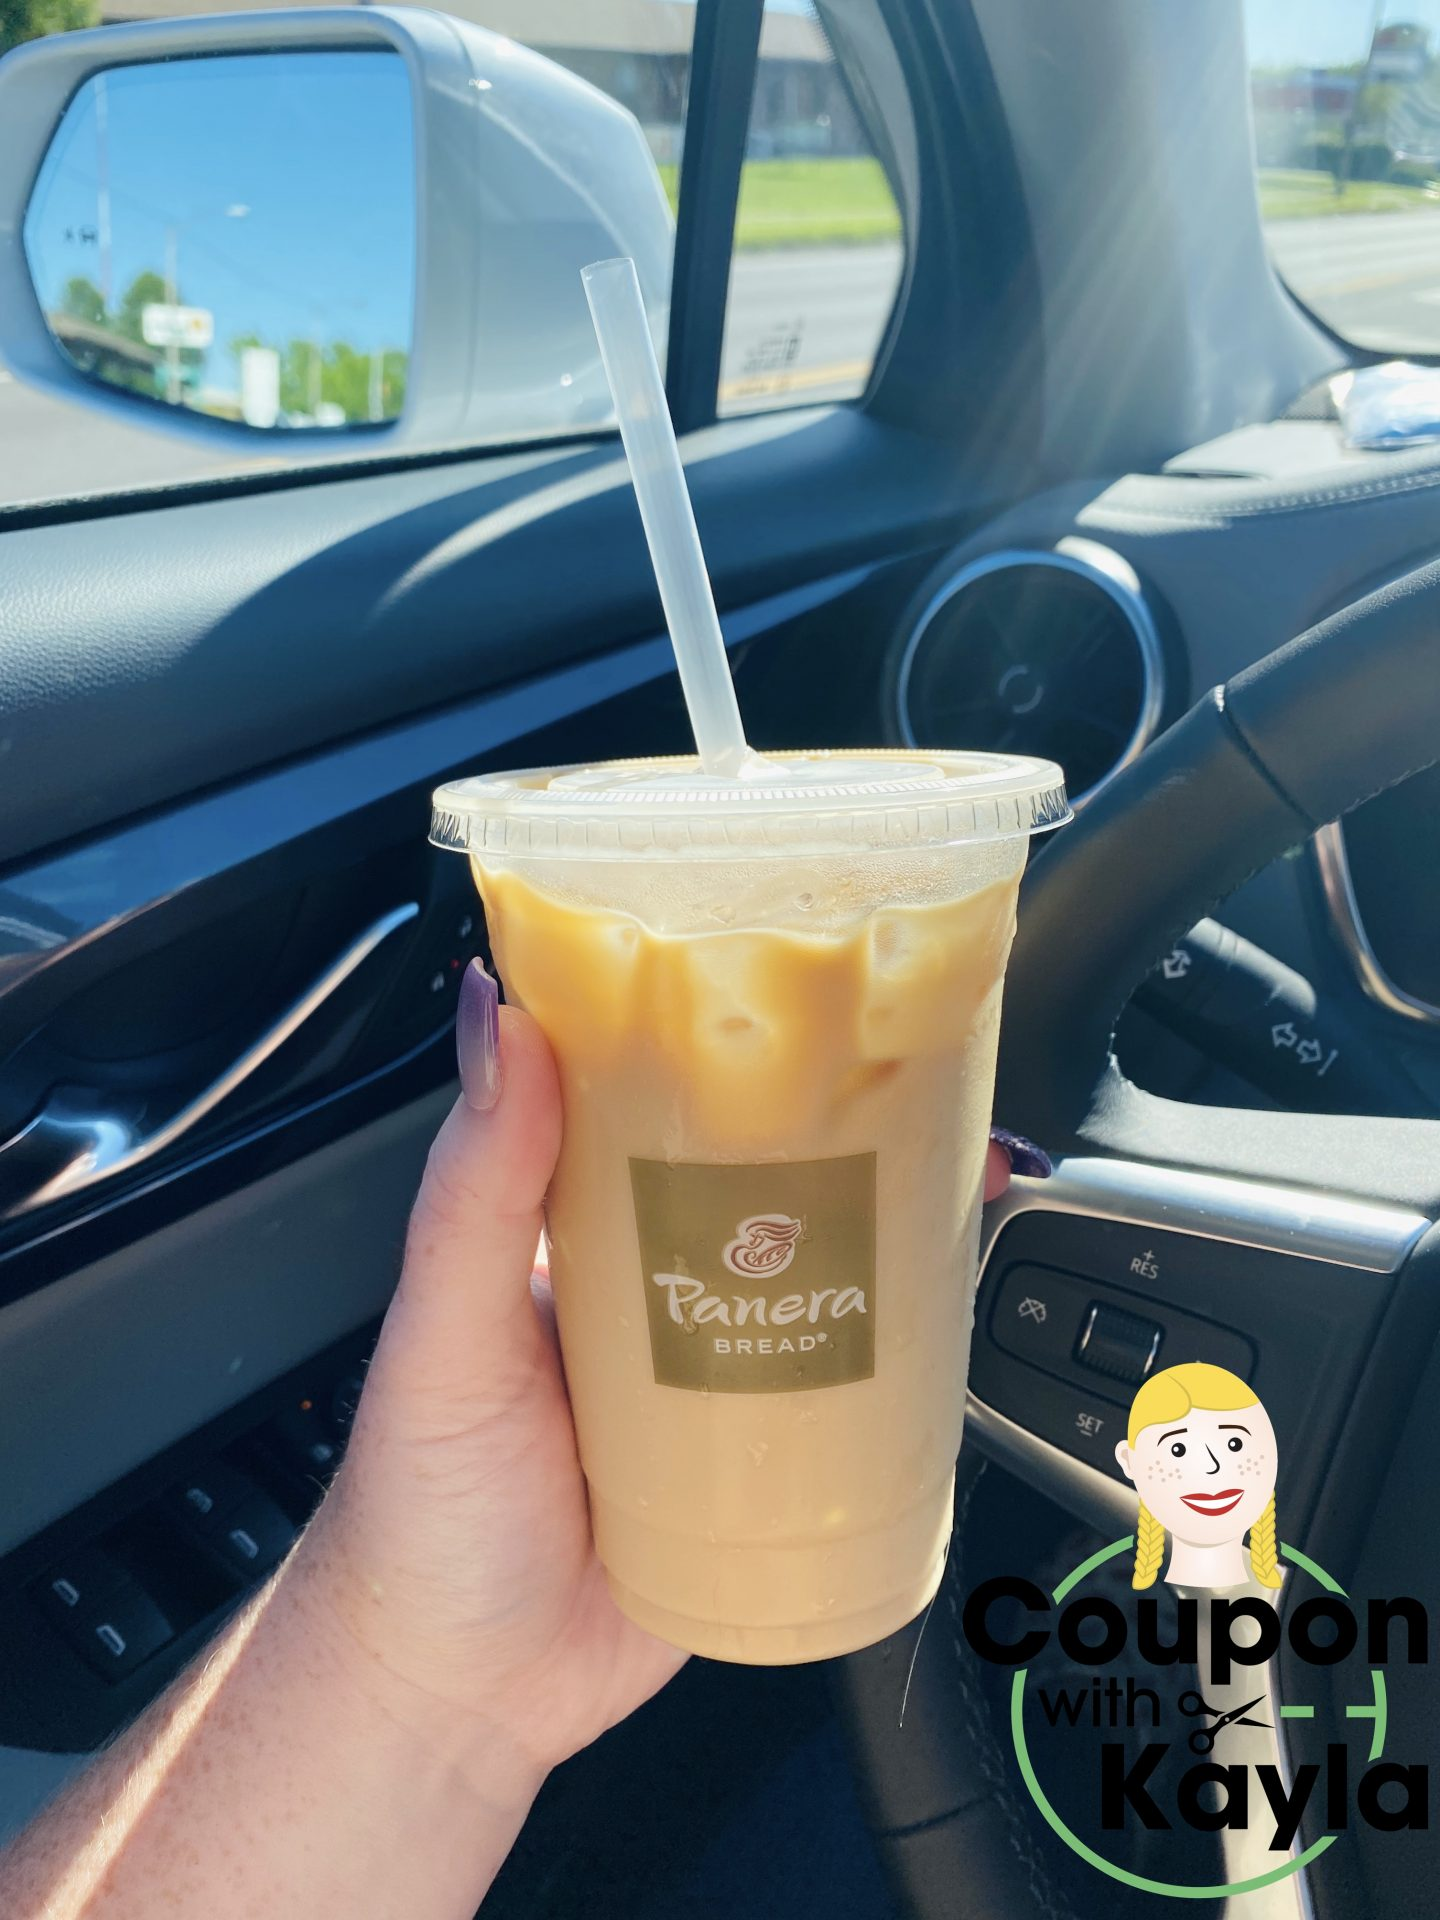 panera coffee free subscription couponing deal